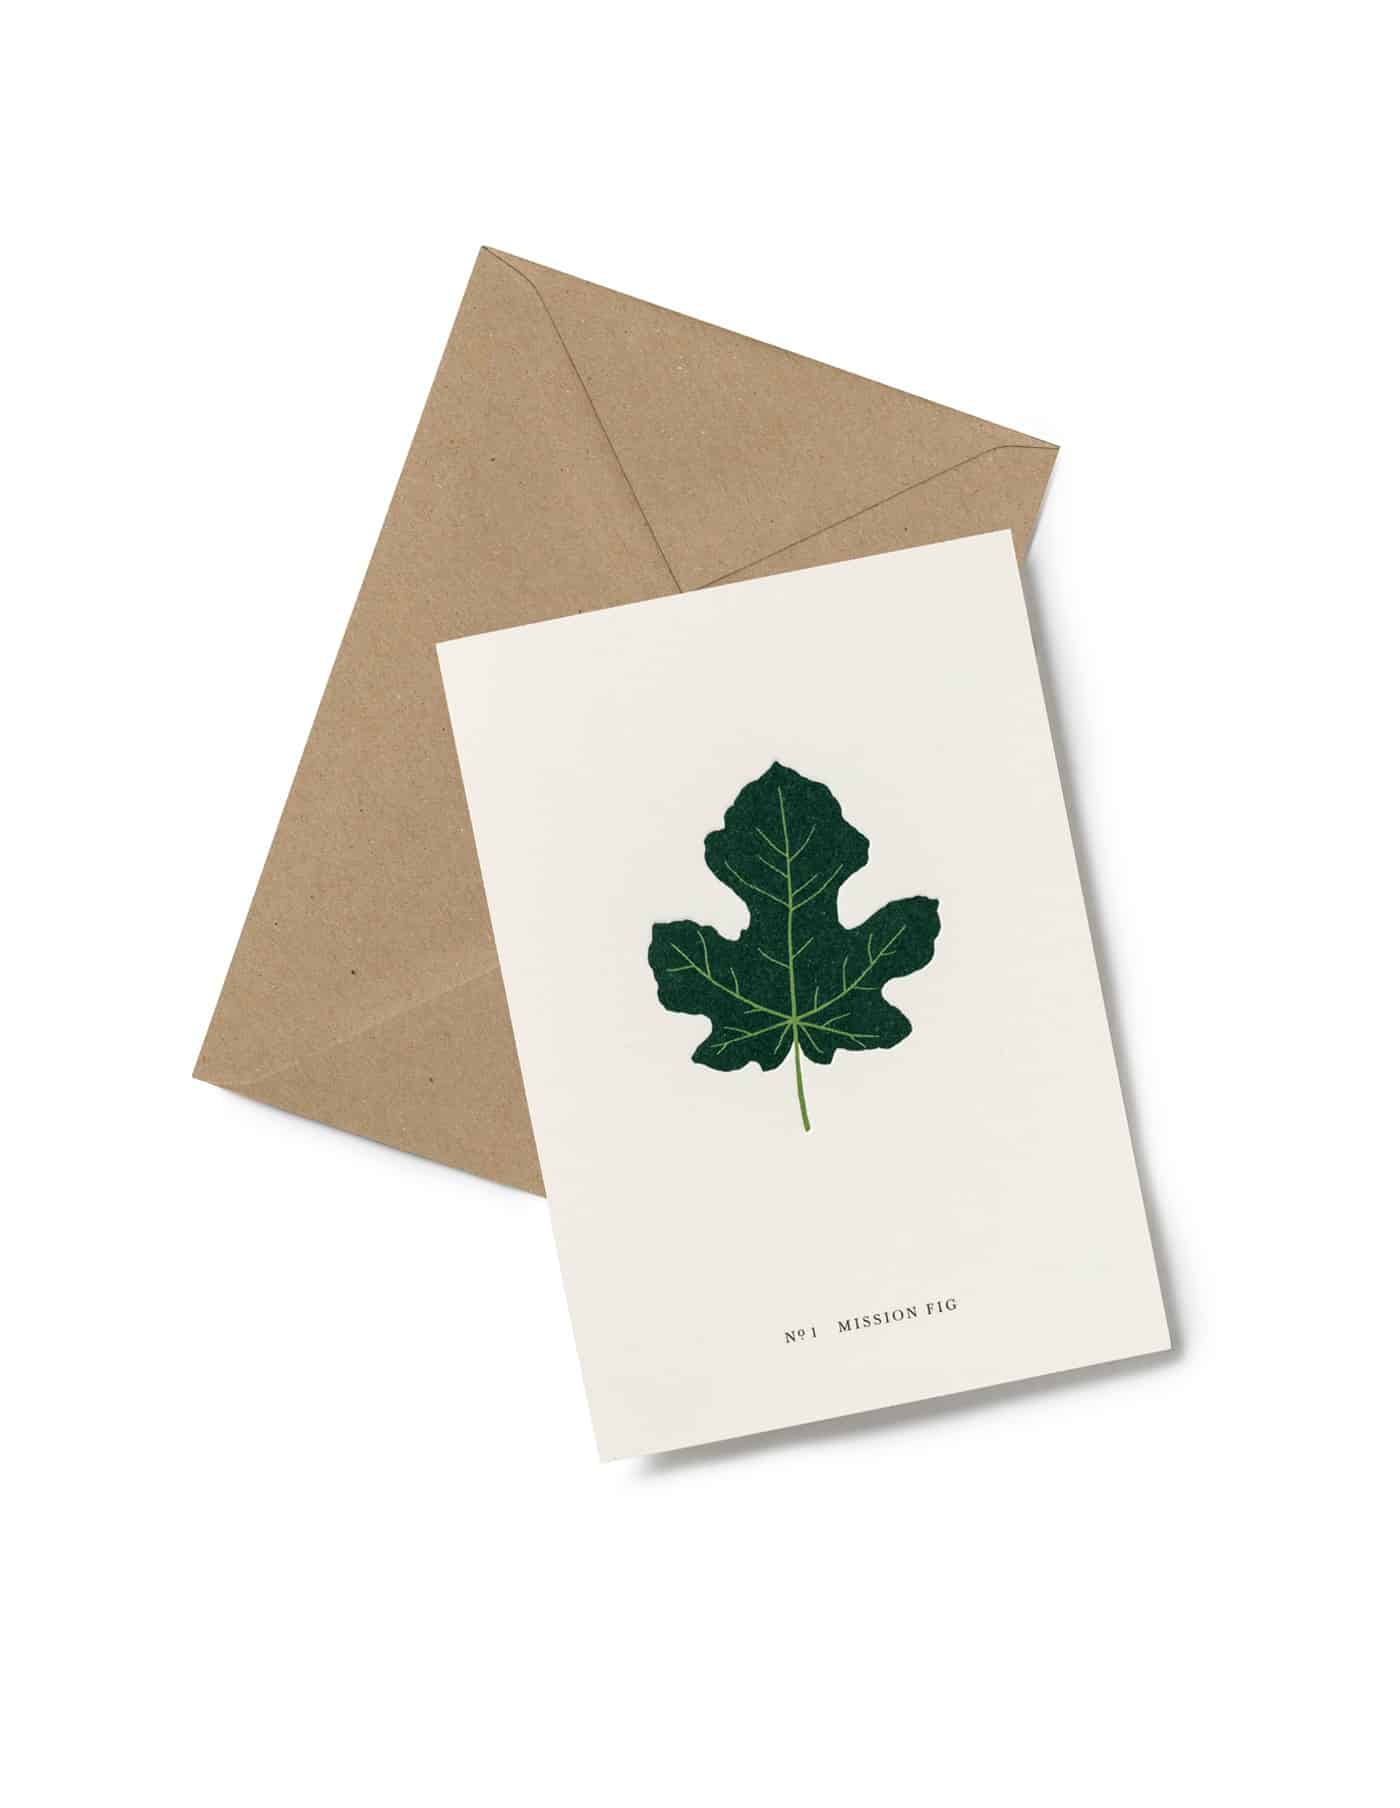 Kartotek Fig Leaf Greeting Card